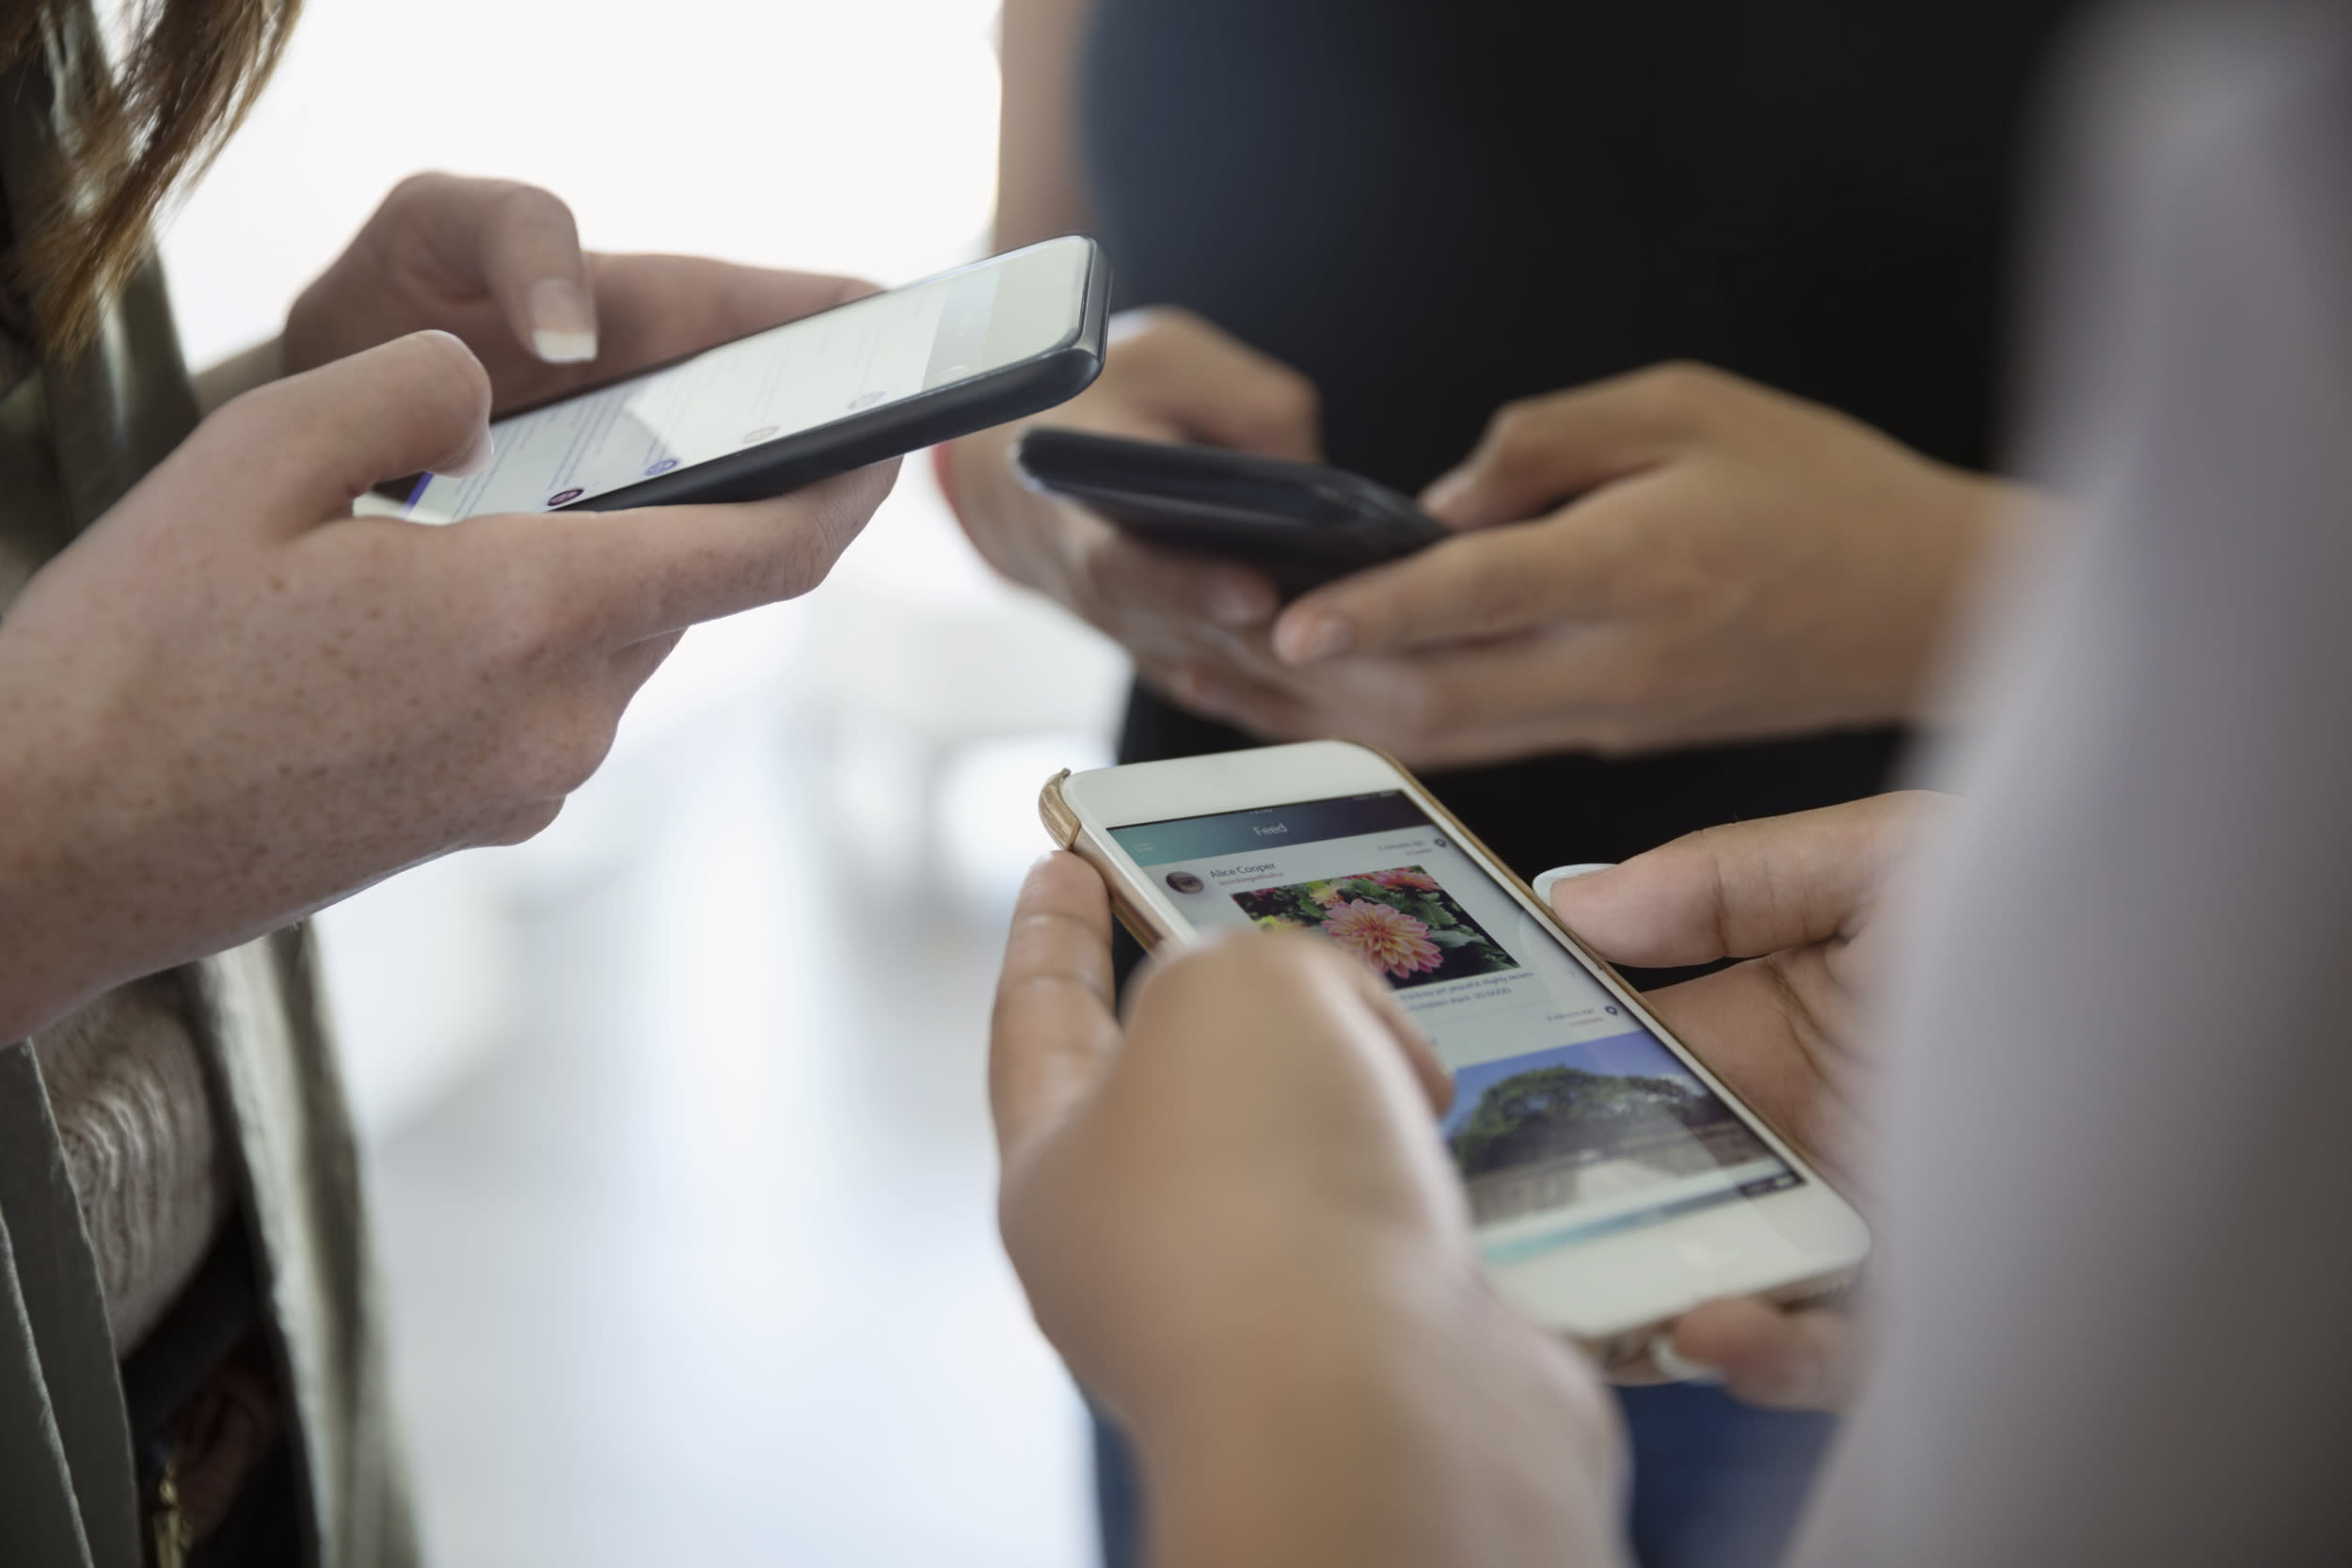 Latinos rely more on social media as a coronavirus lifeline, Nielsen report finds